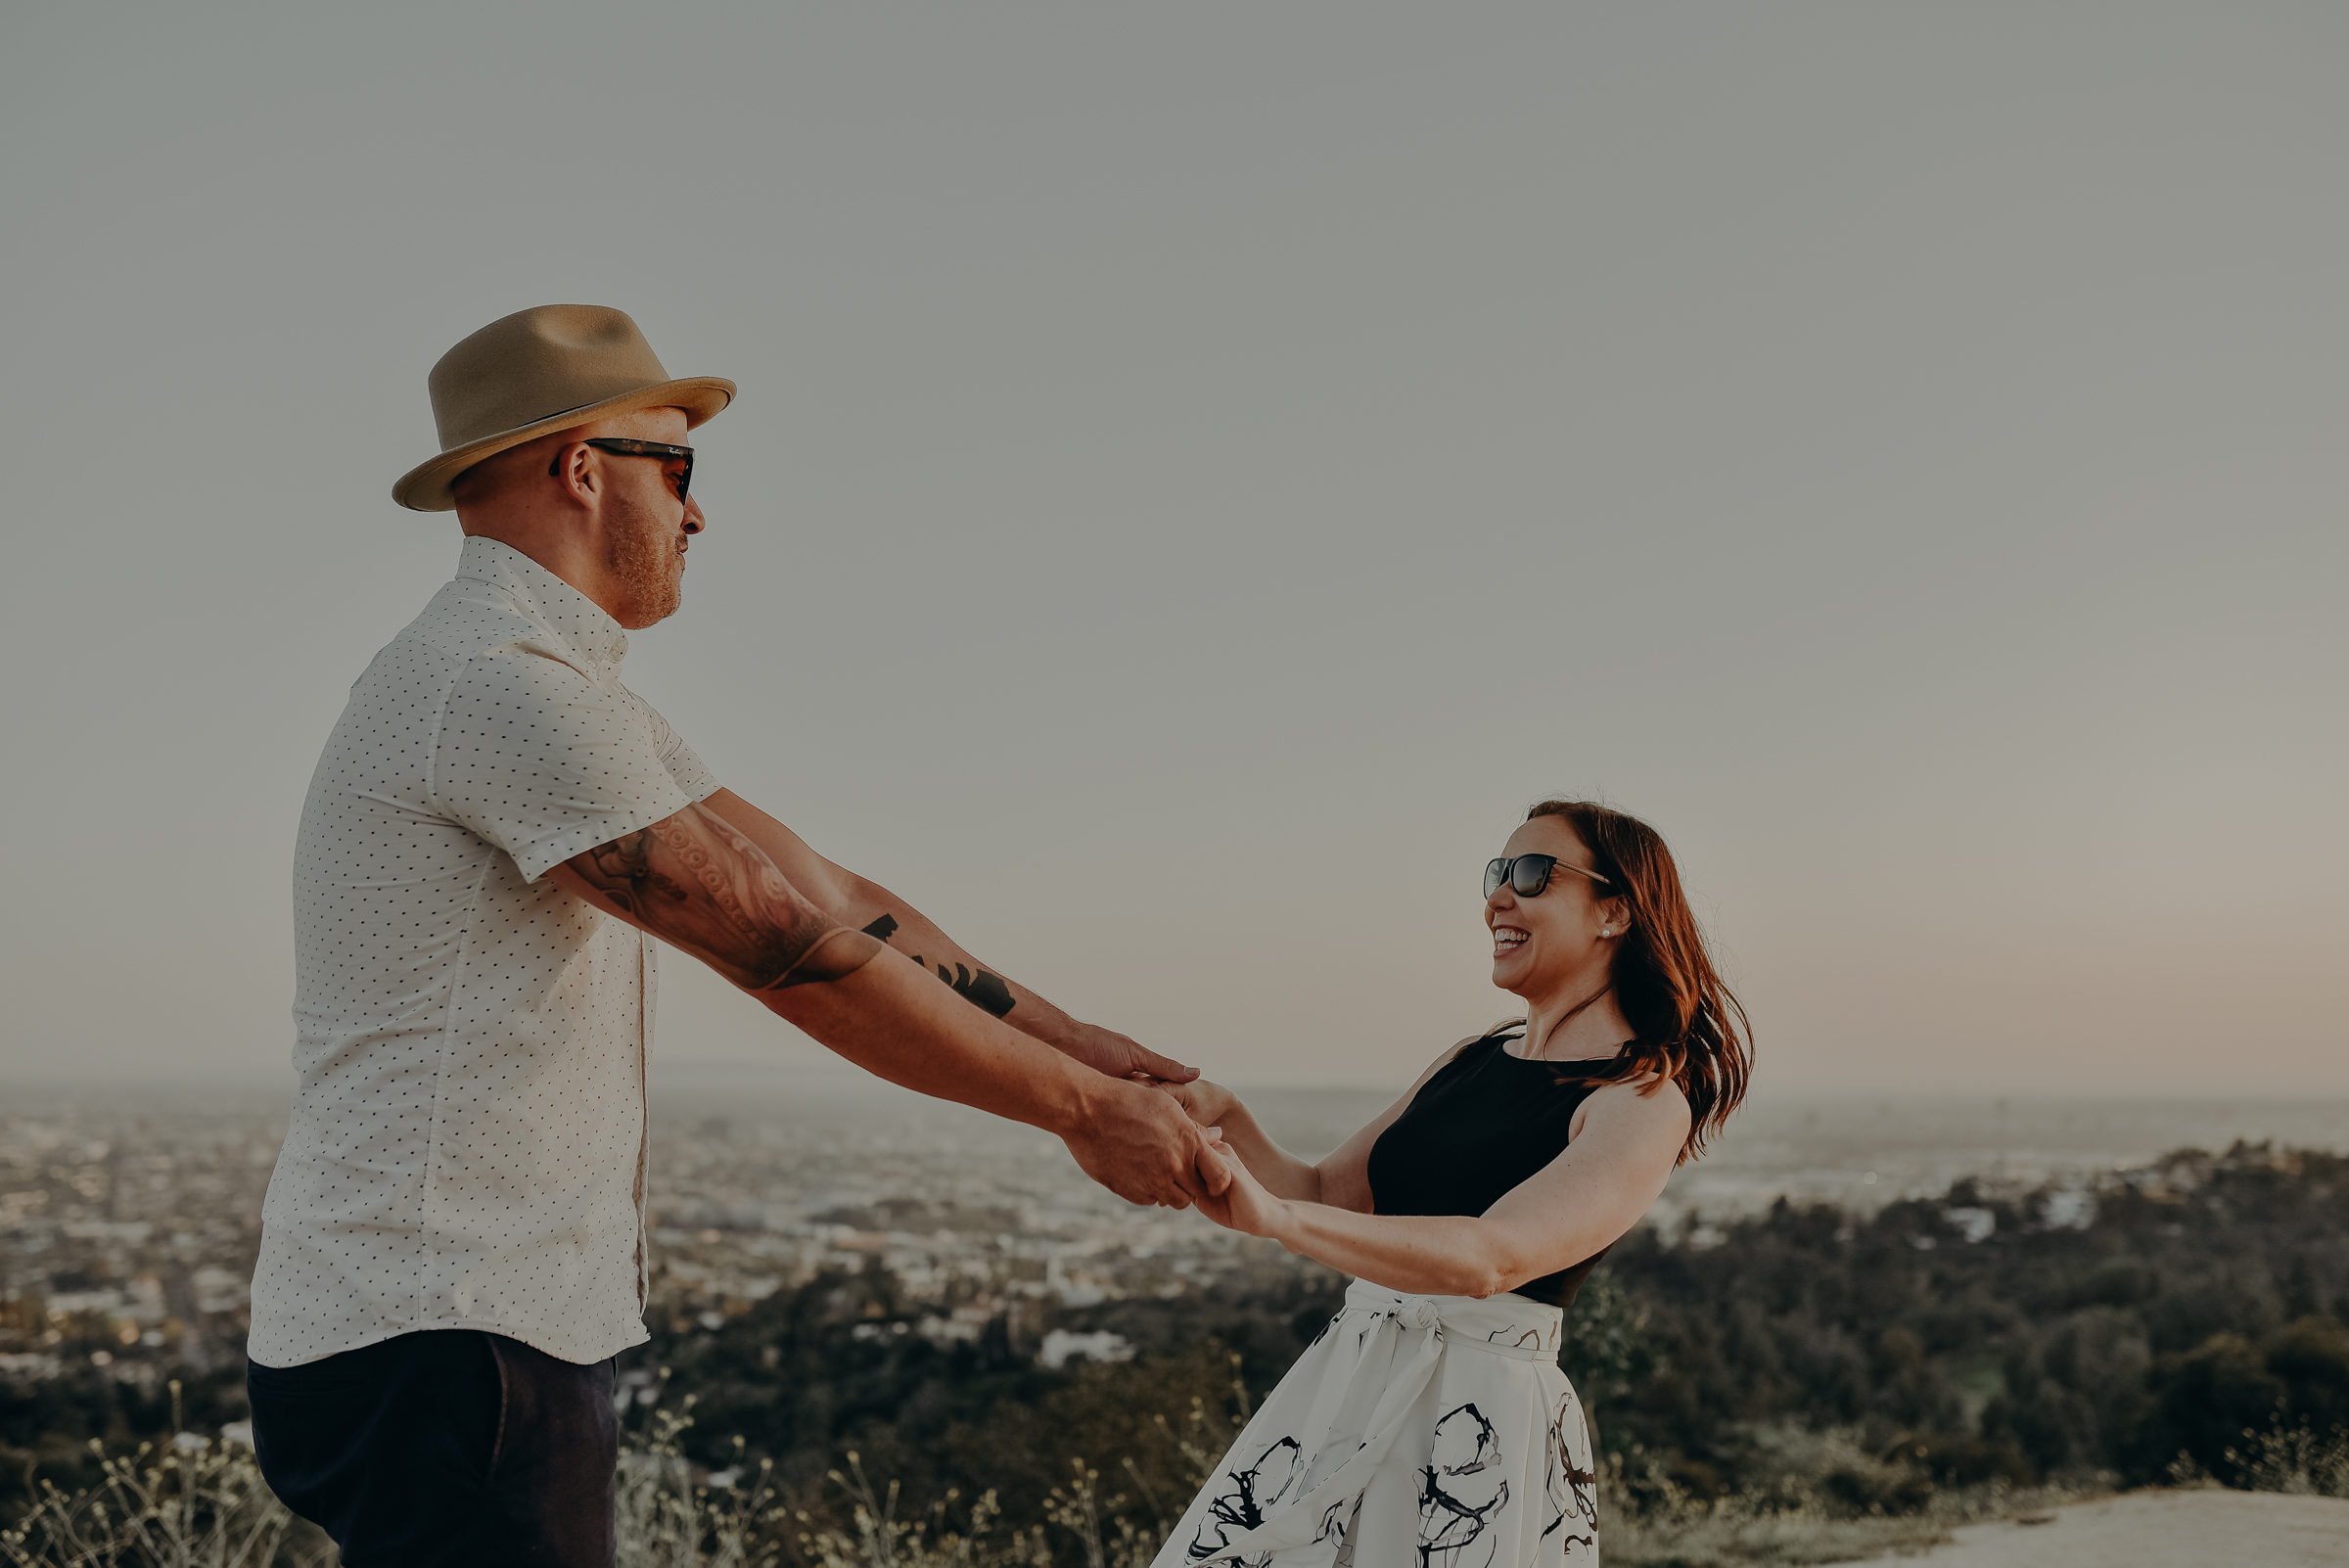 Los Angeles Wedding Photographers - Griffith Park Engagement - IsaiahAndTaylor.com-041.jpg